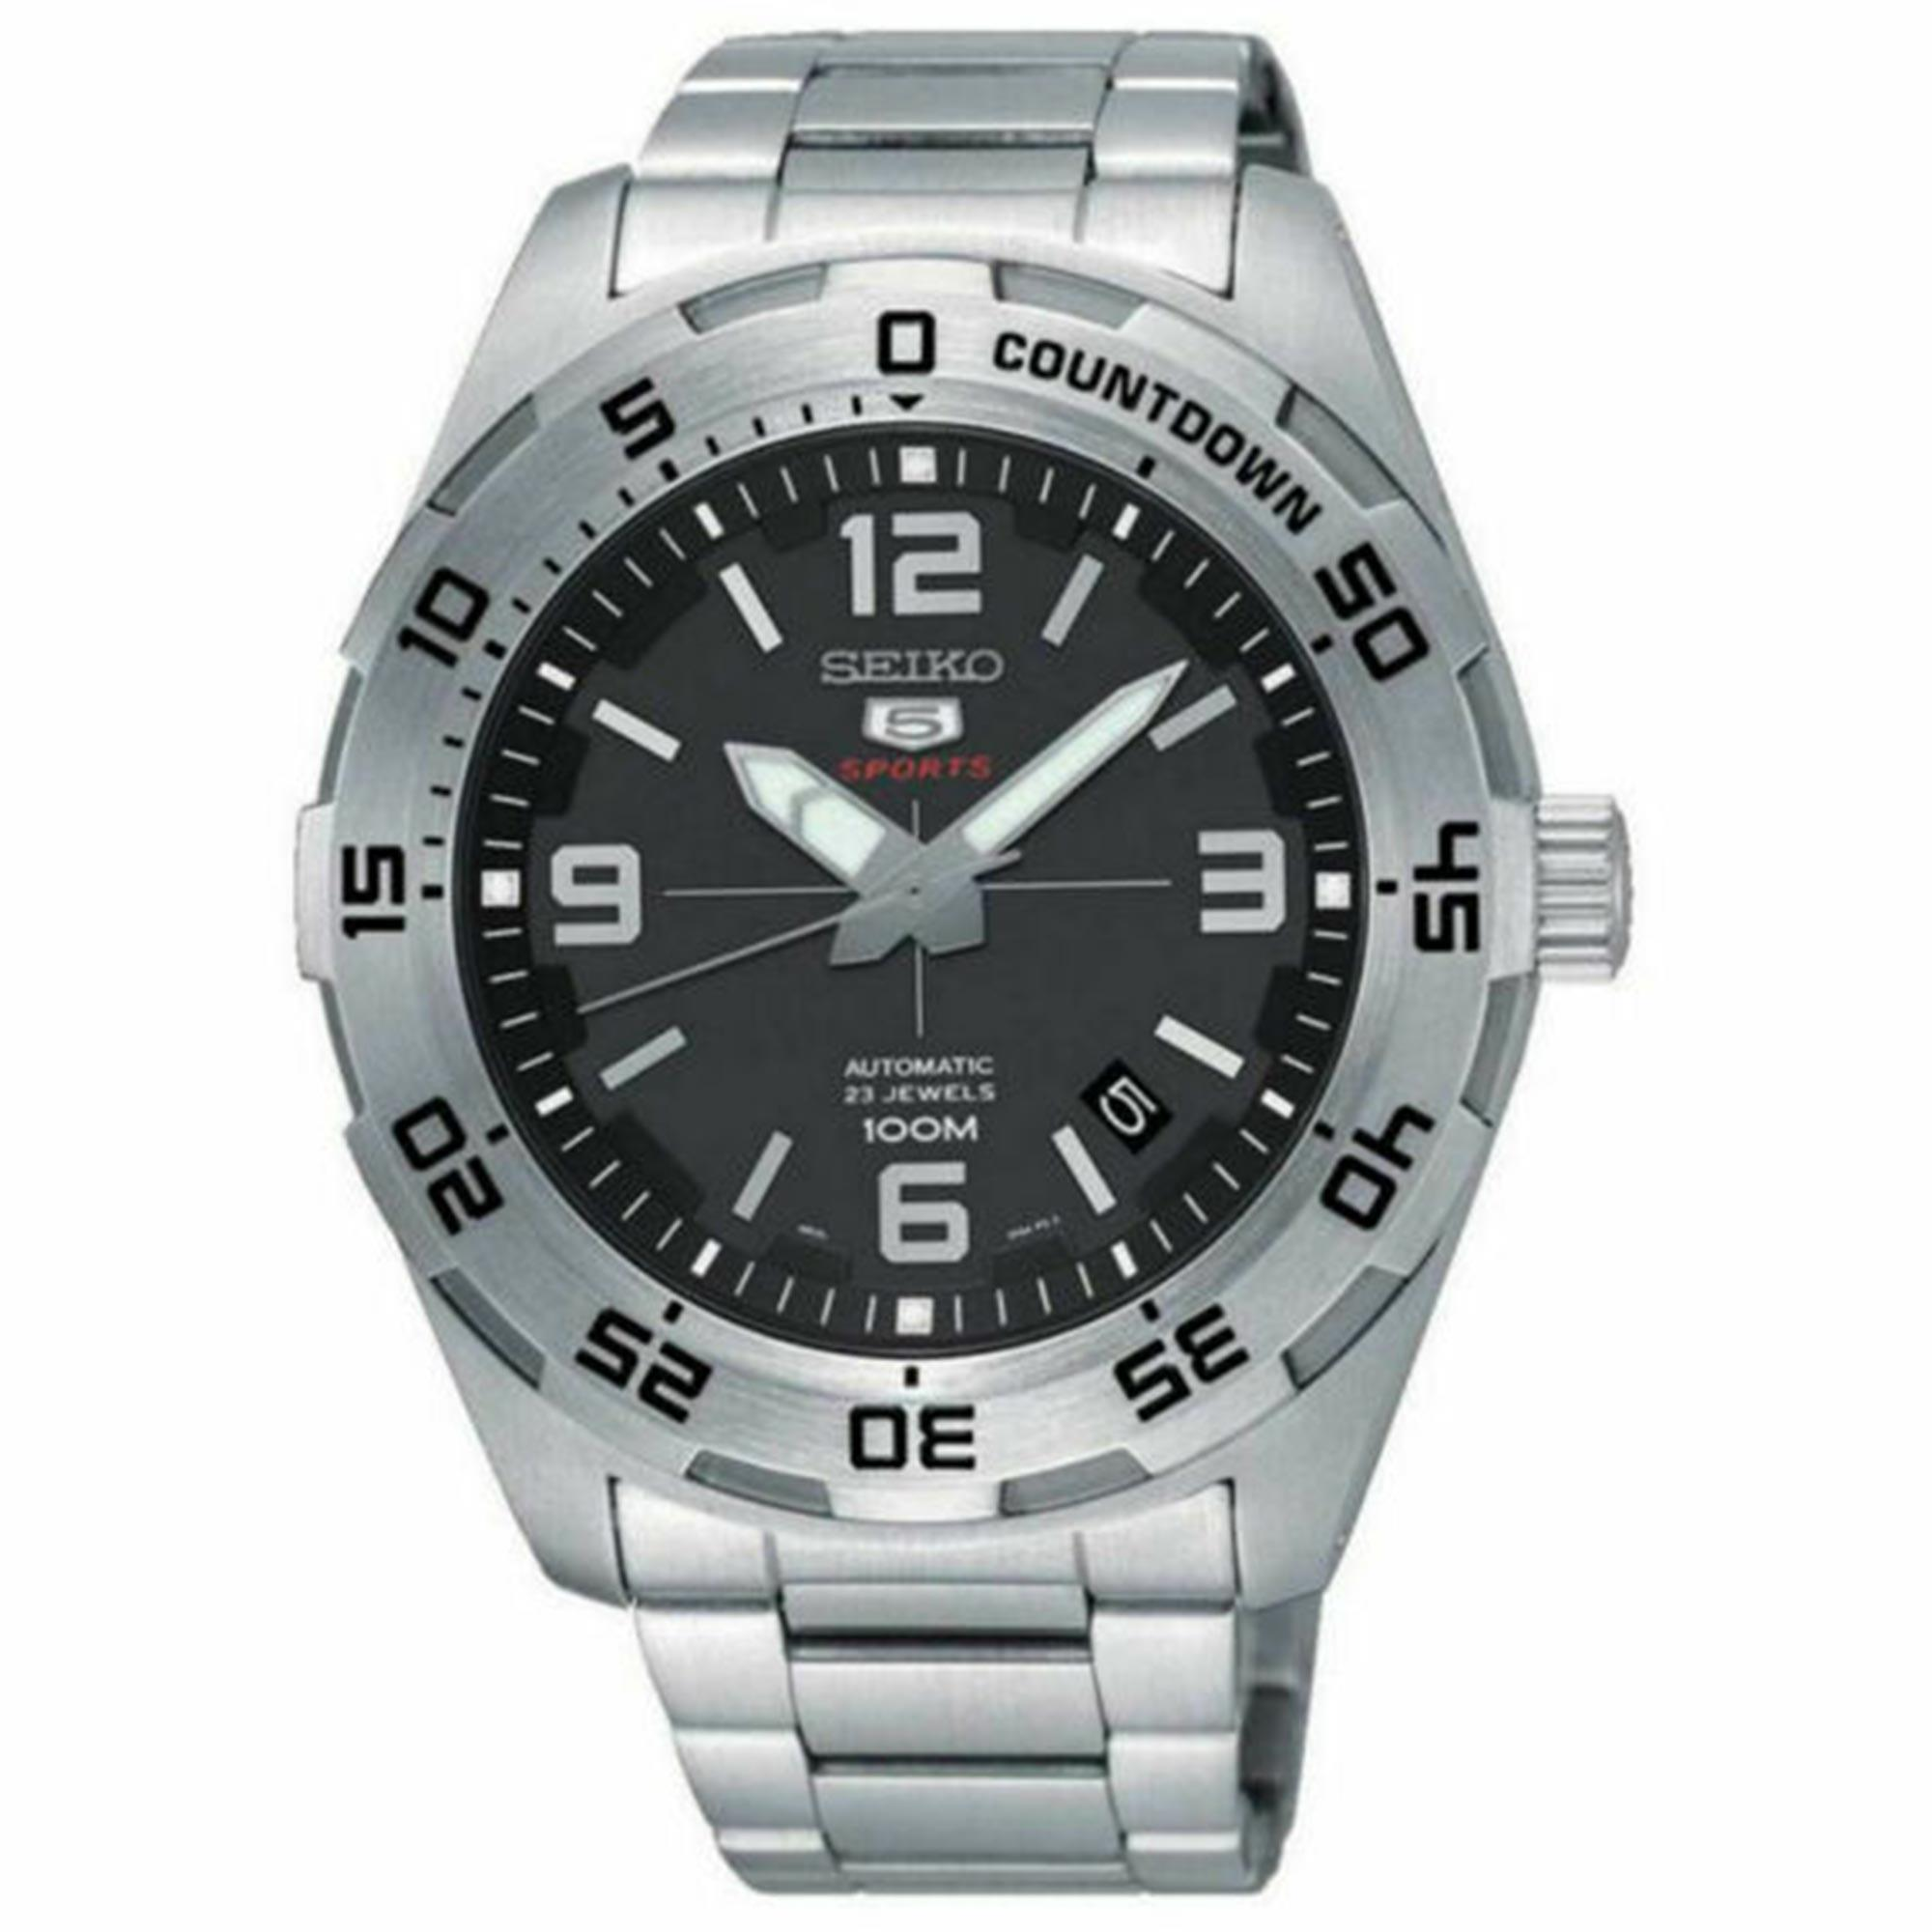 Seiko 5 Sports Automatic Black Dial Silver Stainless Steel Men's Watch SRPB79K1 RRP £250